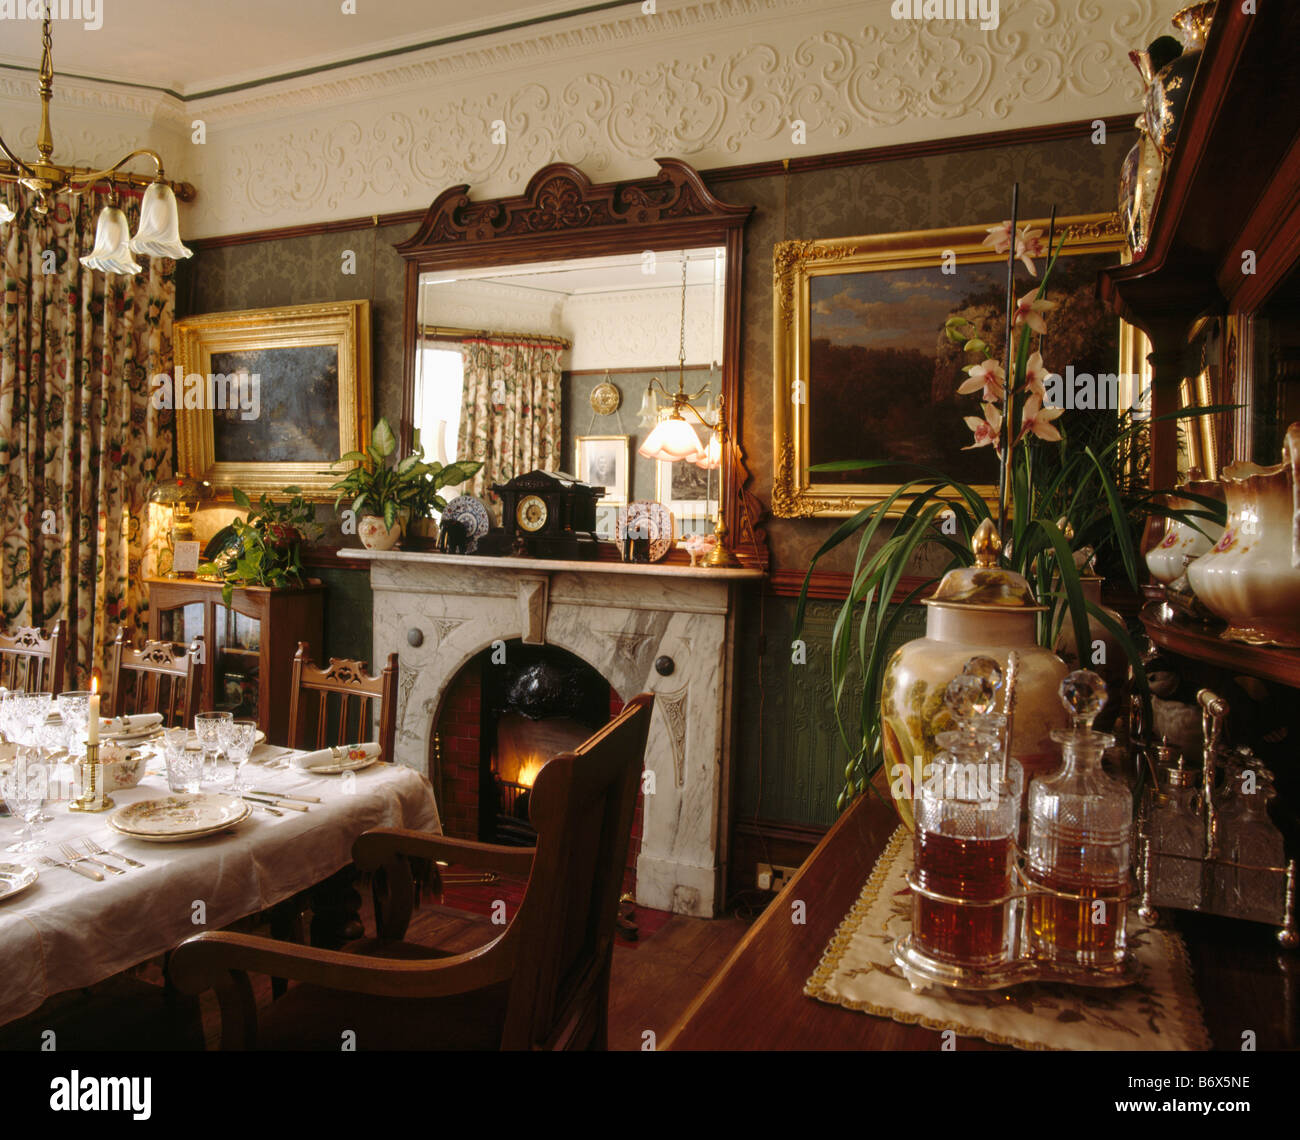 Mirror Above Fireplace In Victorian Dining Room With Gilt Framed Stock Photo Alamy